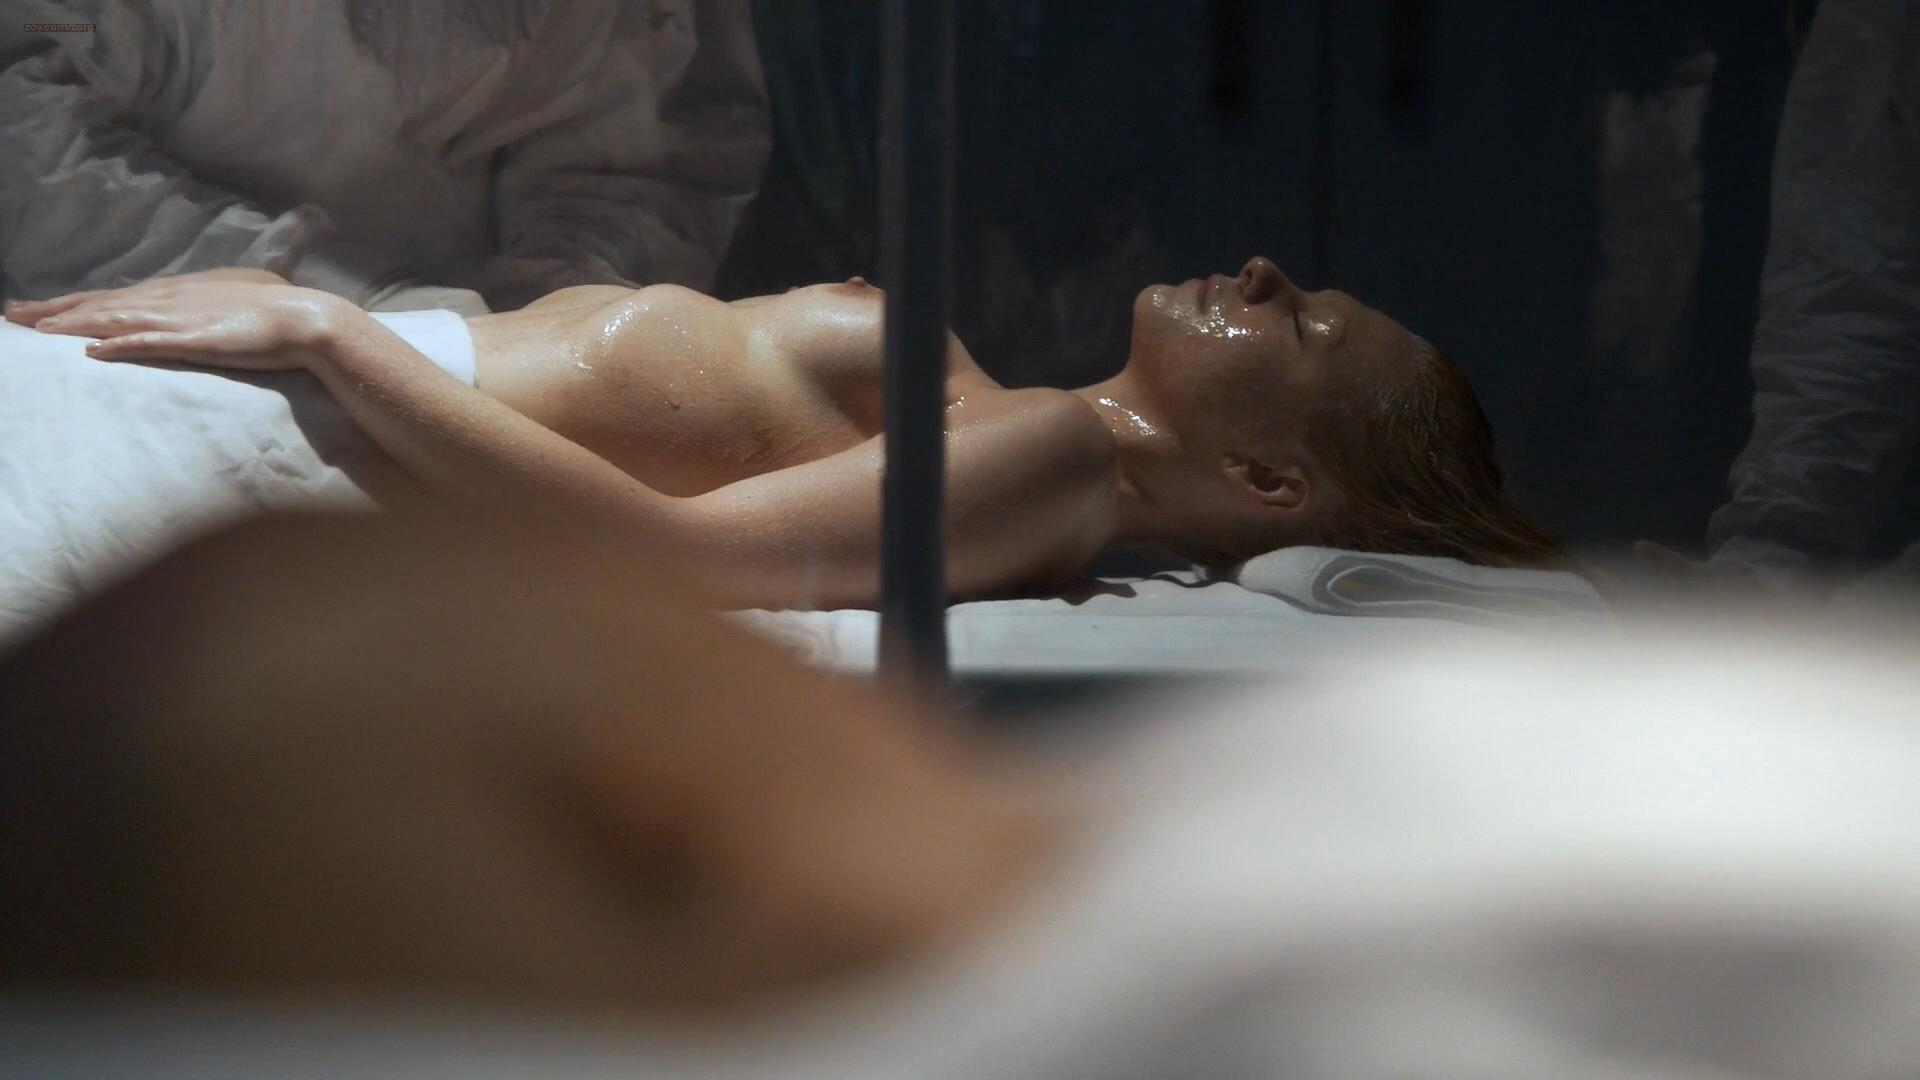 Alexandra Gordon nude in – Hemlock Grove (2014) s2e7-8 hd1080p